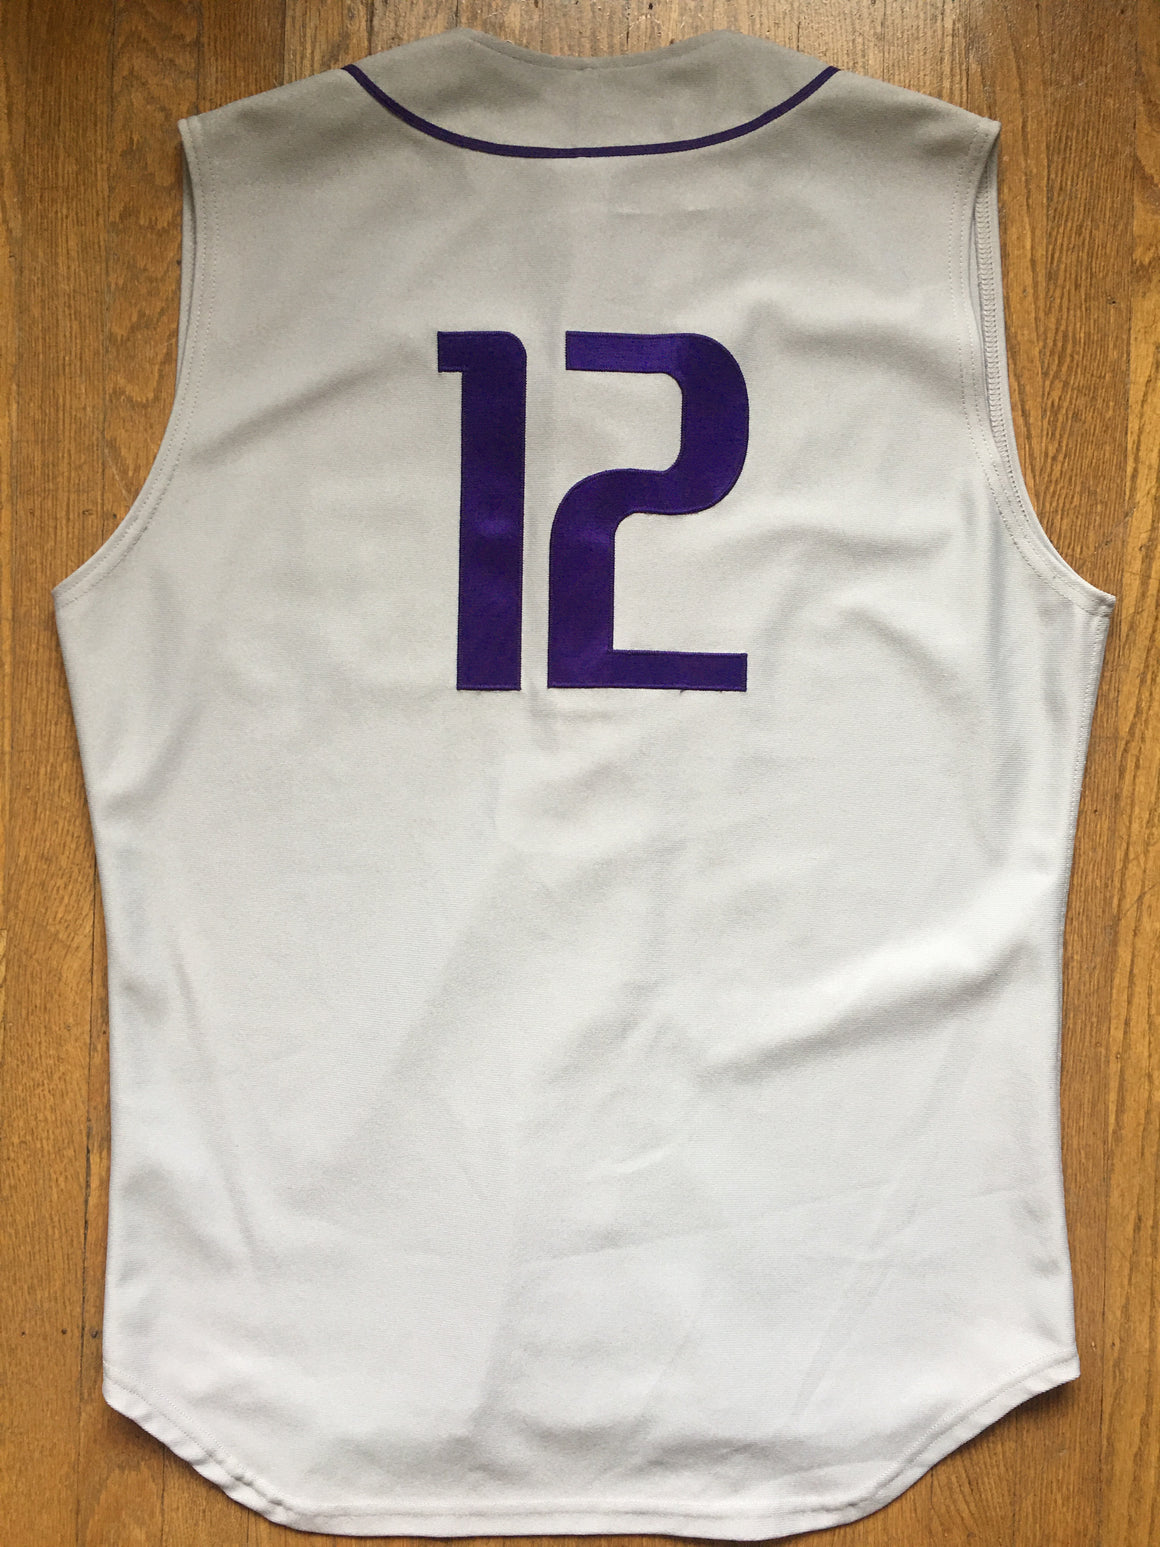 Washington Huskies authentic #12 baseball jersey - XL / 48